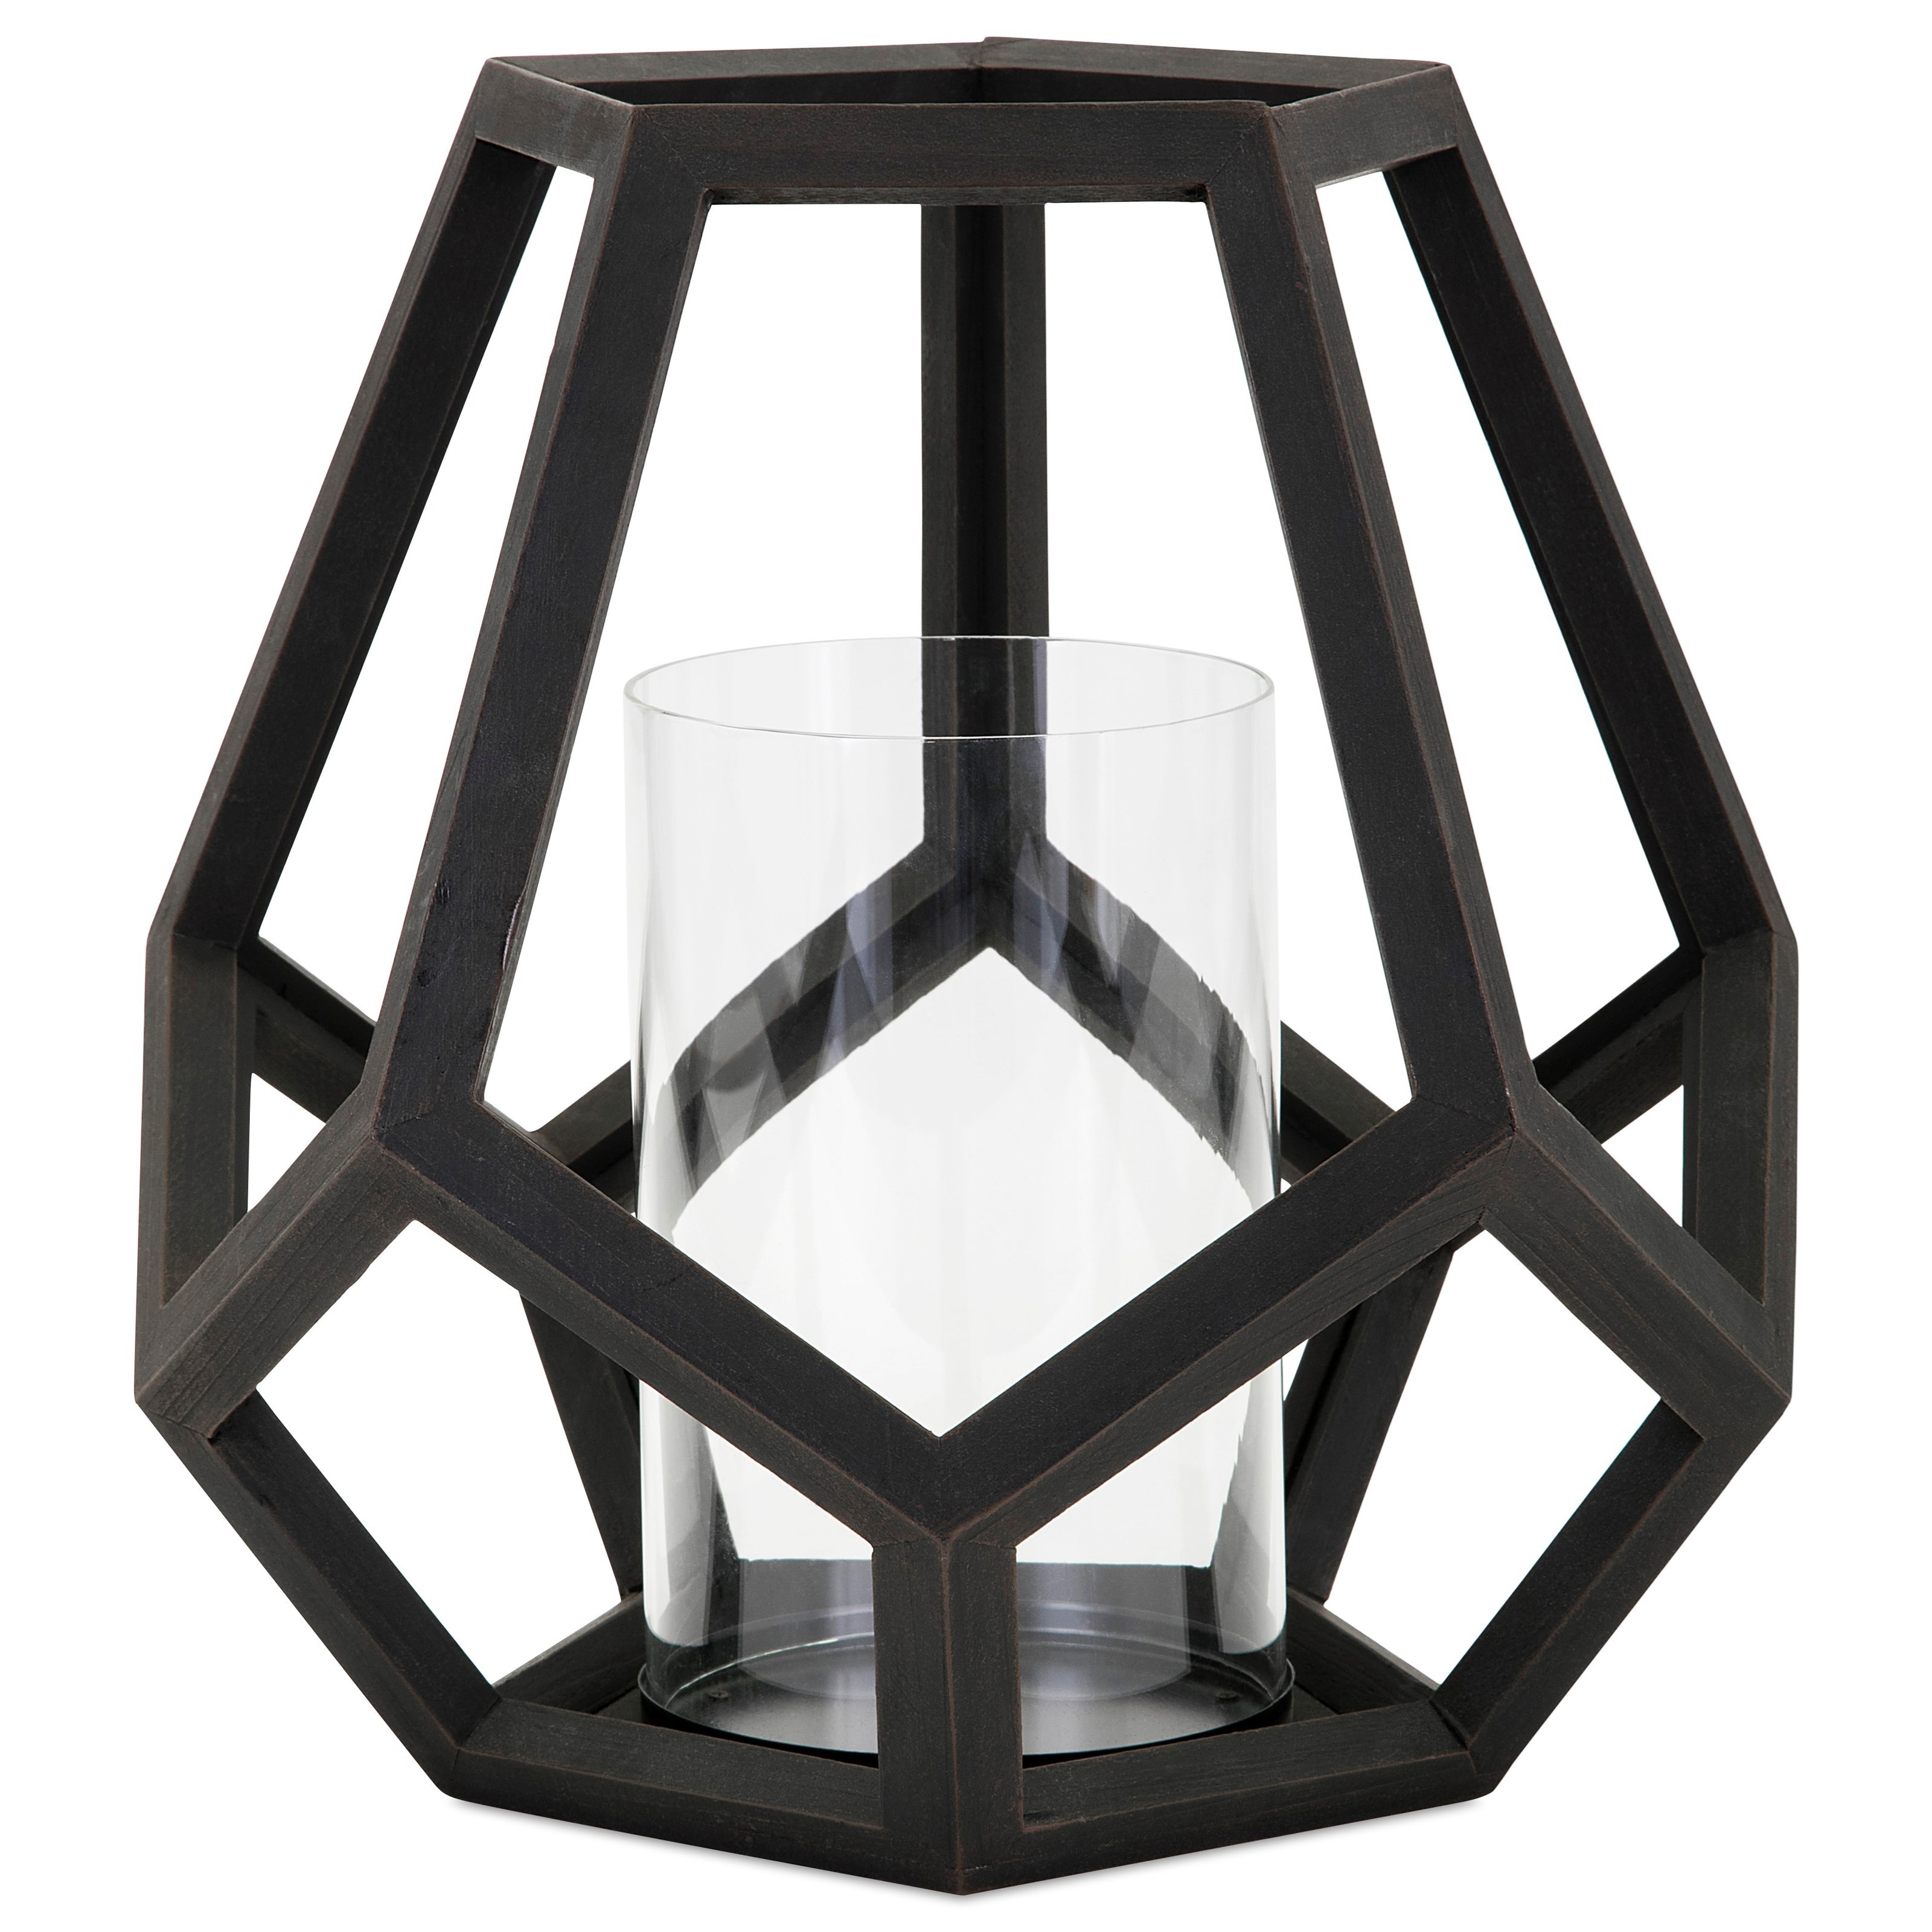 Candle Holders and Lanterns Ubon Large Wood Lantern by IMAX Worldwide Home at Miller Waldrop Furniture and Decor